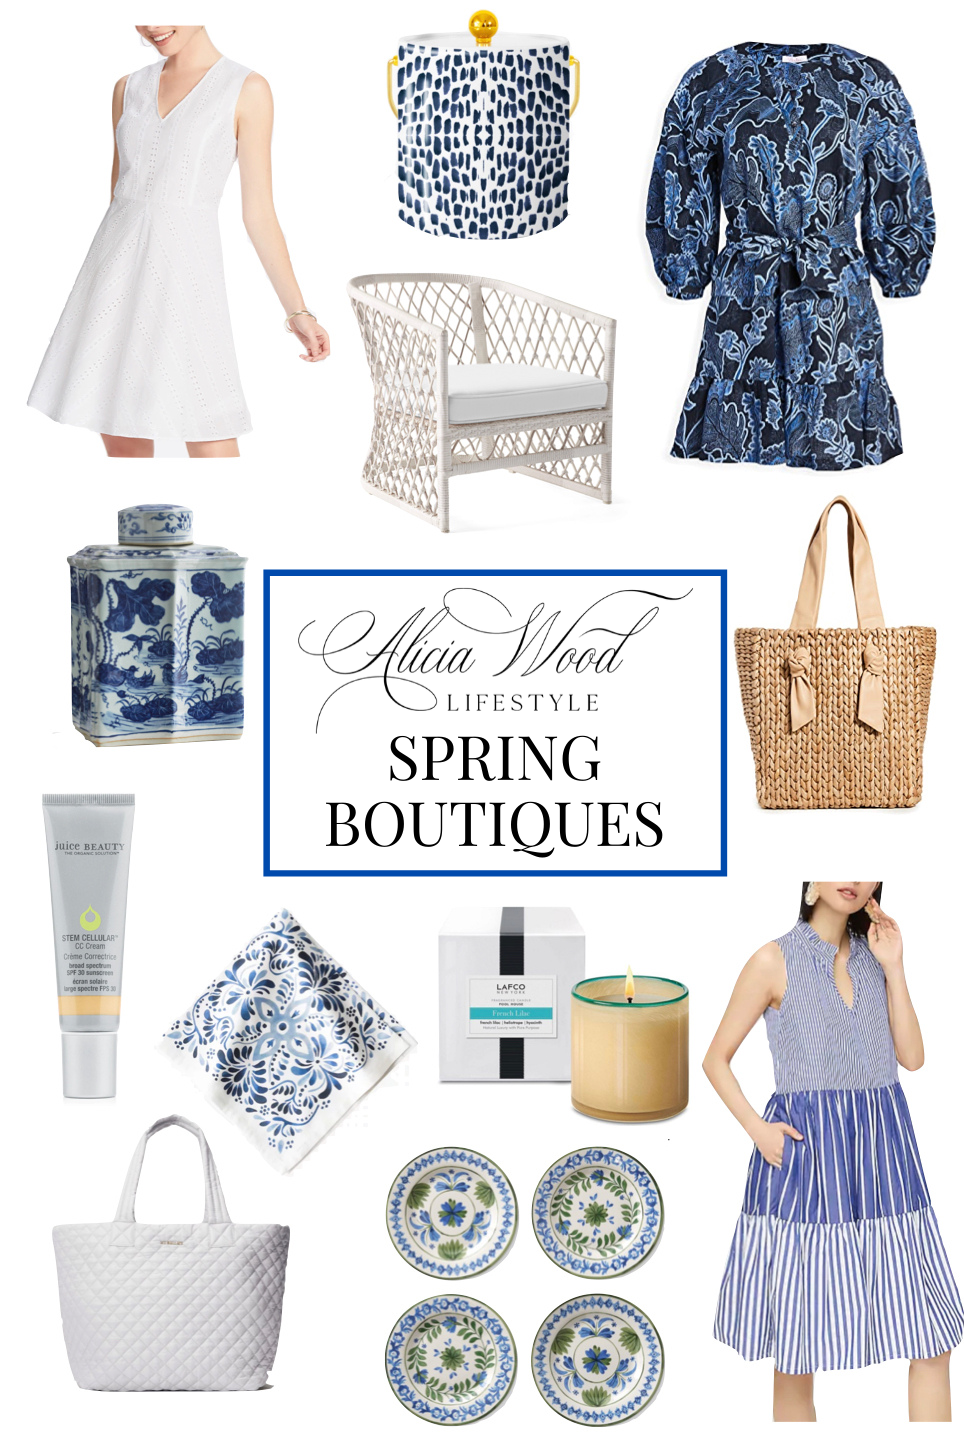 AWL Spring Boutiques